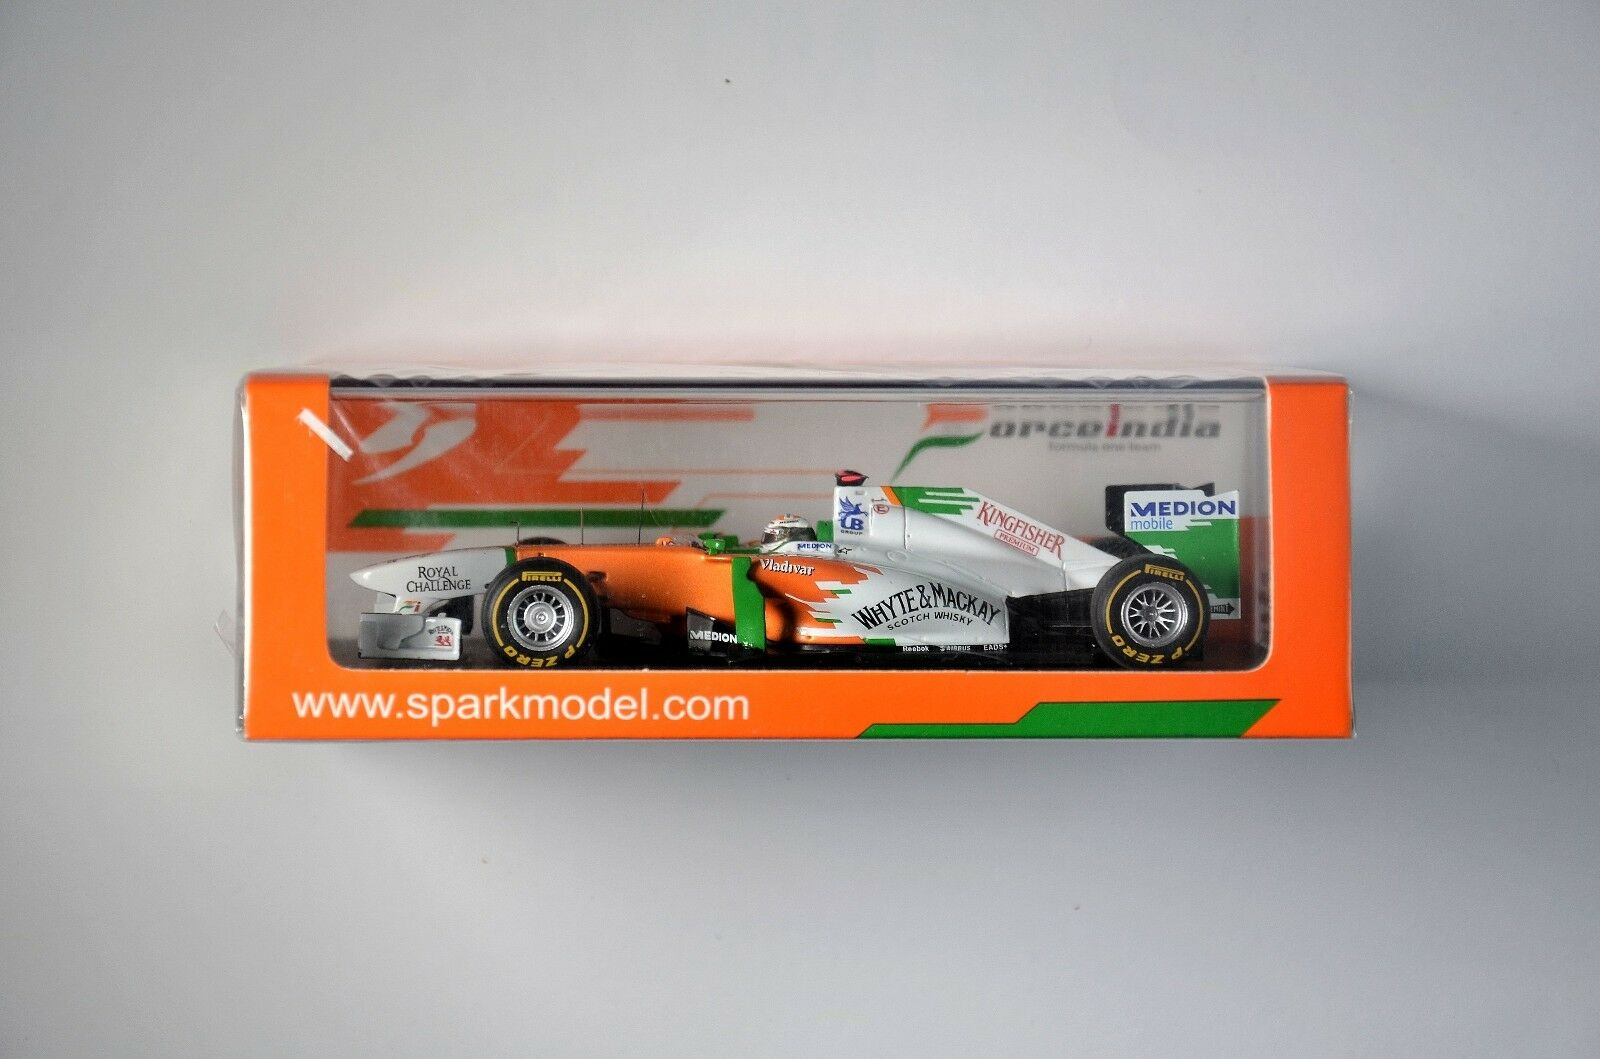 SPARK Force India VJM04 No.14 Monaco GP 2011 Subtle Adrian S3024 1 43